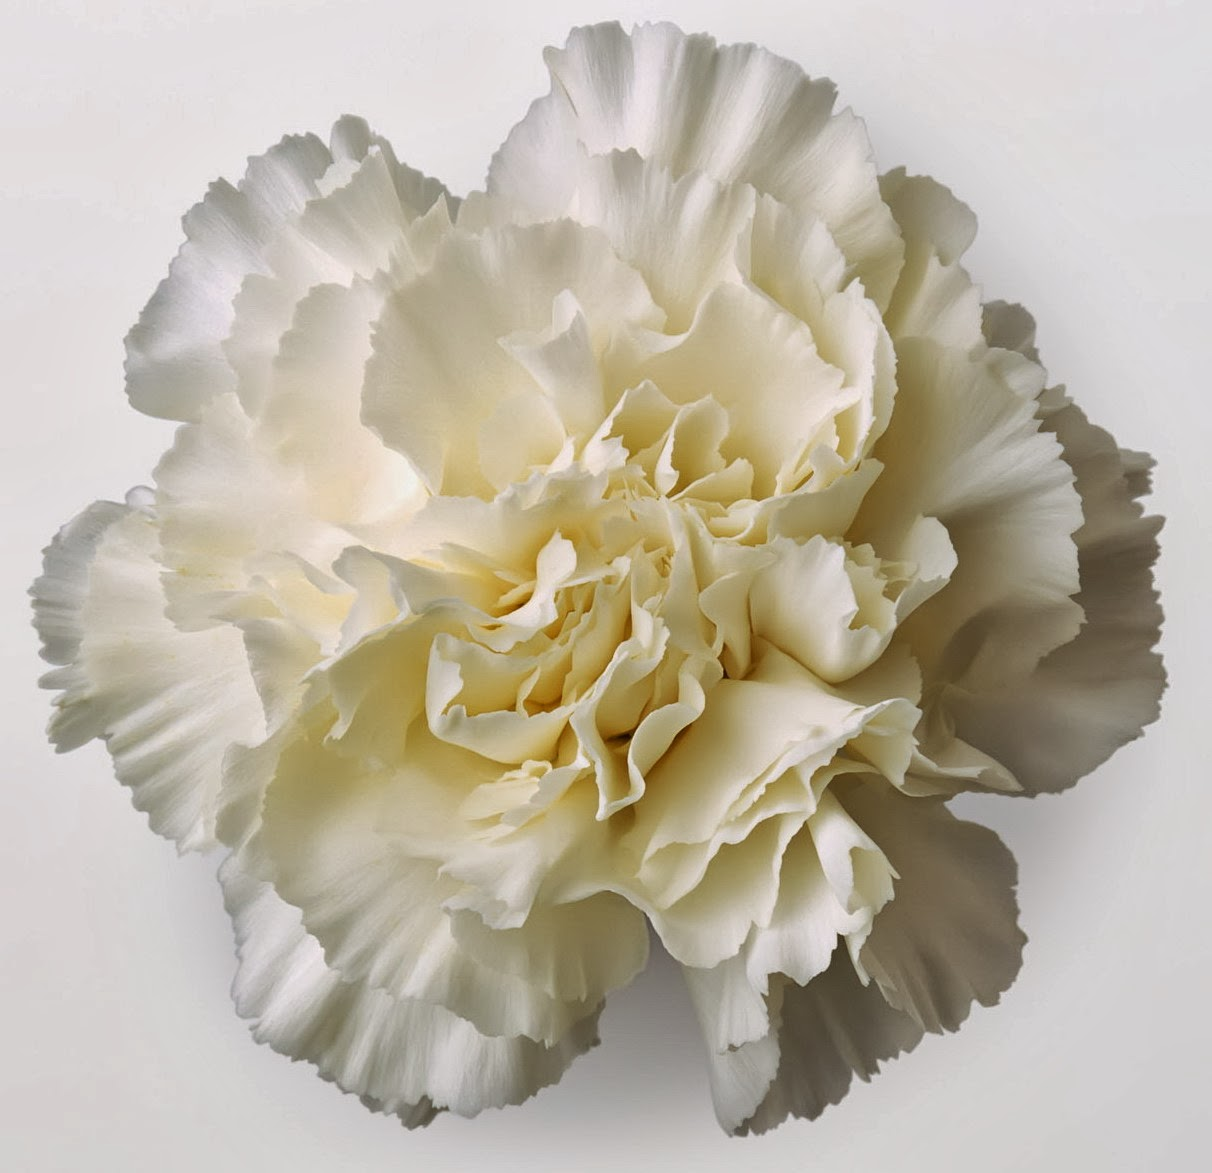 January Birth Flower White Carnation meaning Pure